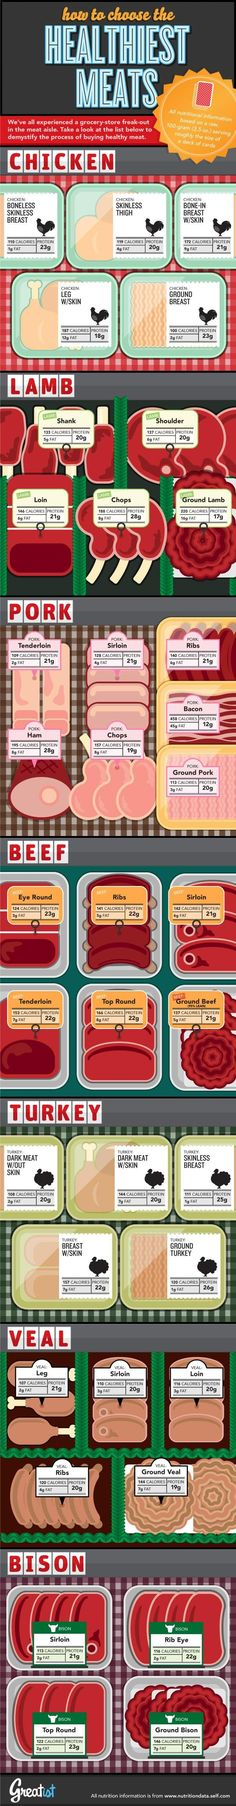 How to Choose the Healthiest Meats. AWESOME quick cheat sheet w basic info by meat type/cut (includes cal / fat / protein).